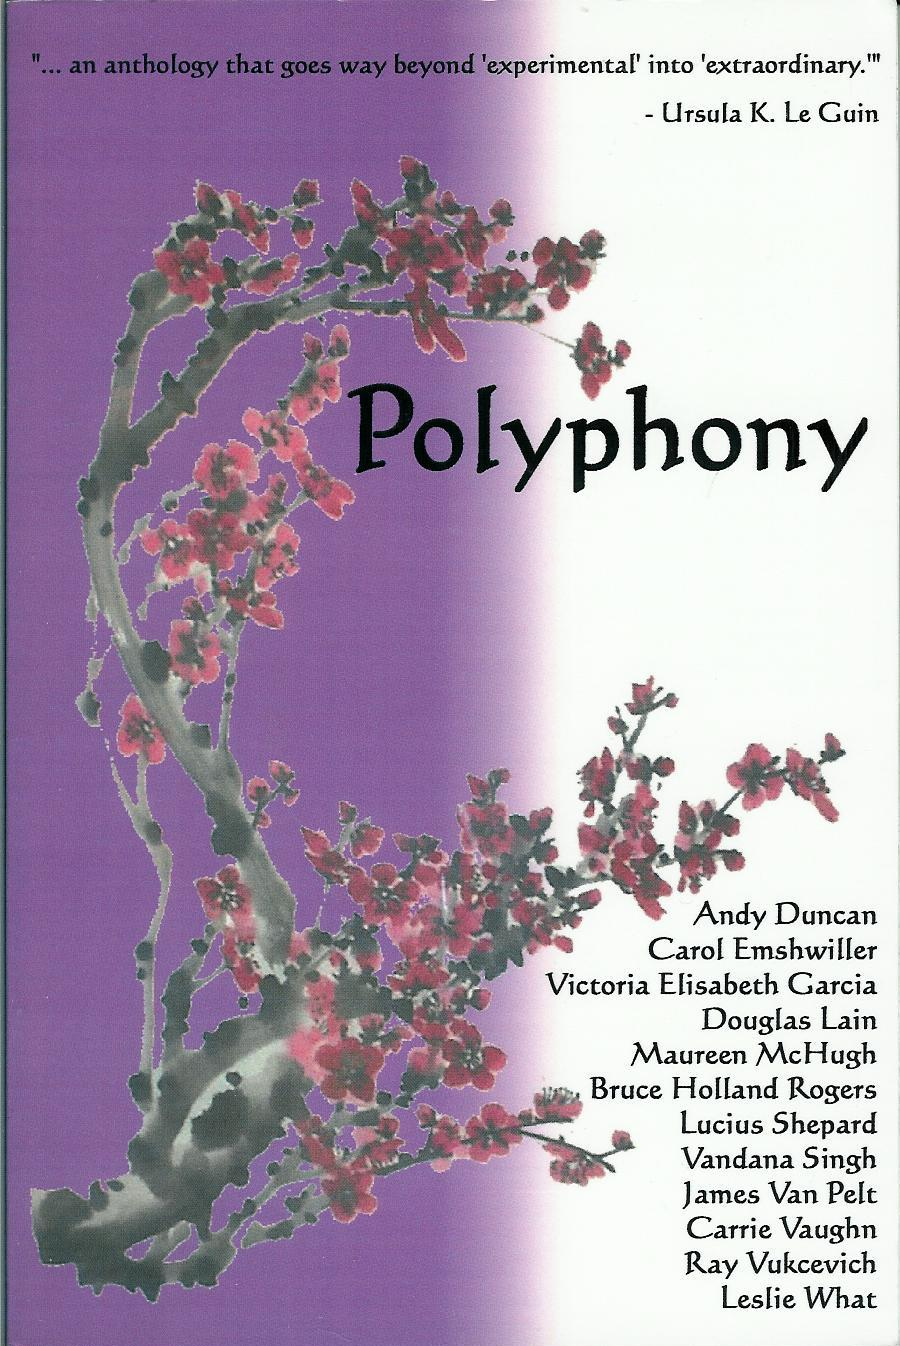 Polyphony 1, Cover